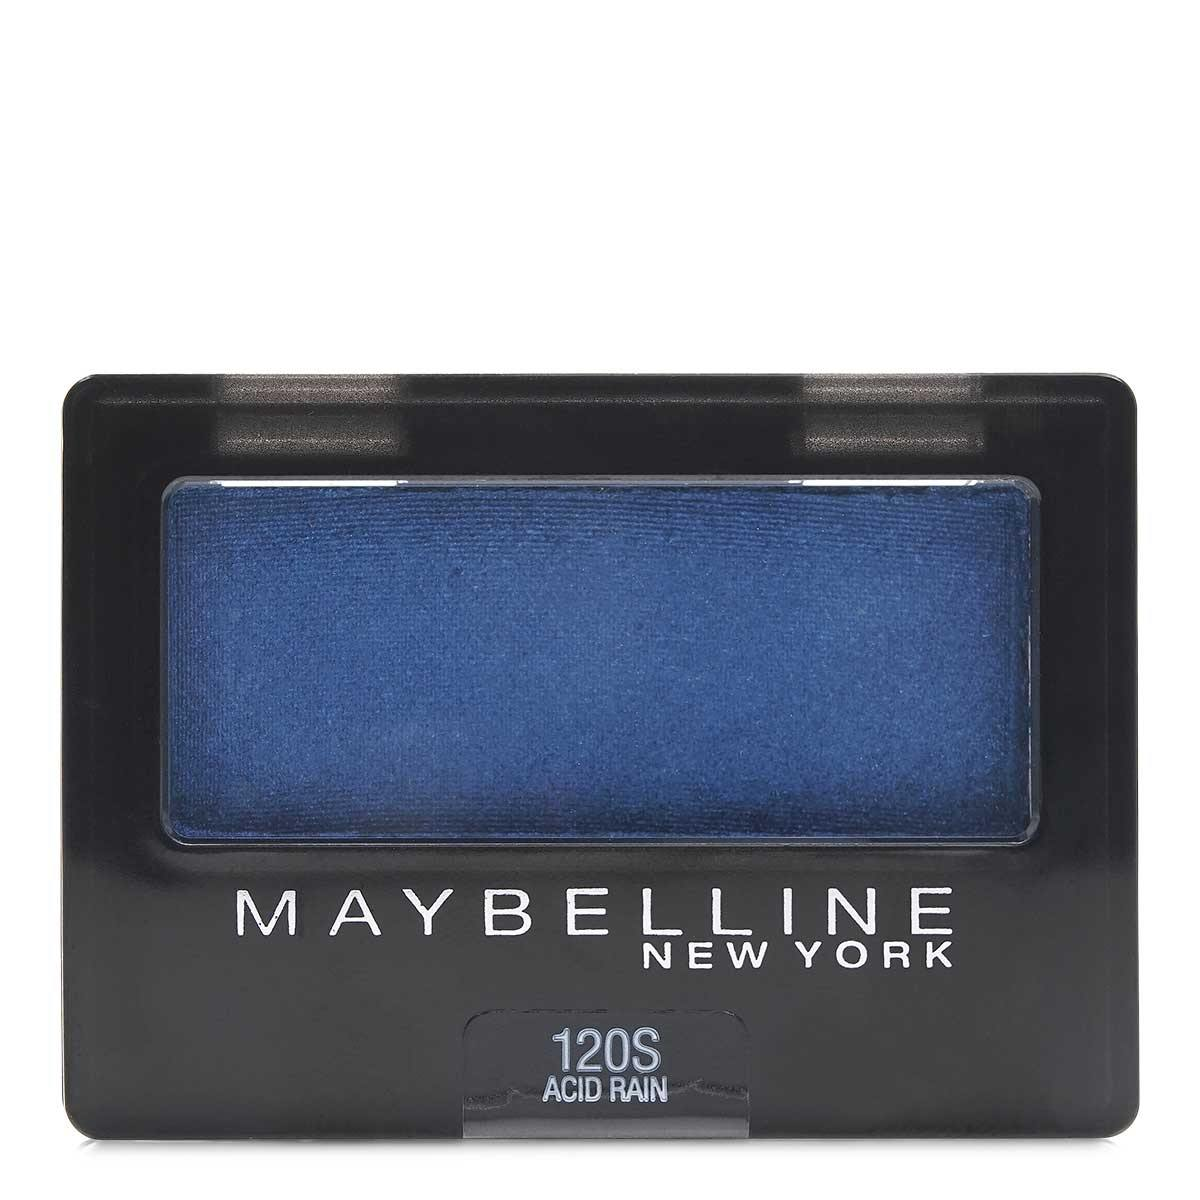 MAYBELLINE EXPERT WEAR SINGLE EYESHADOW- ACID RAIN (24/cs)